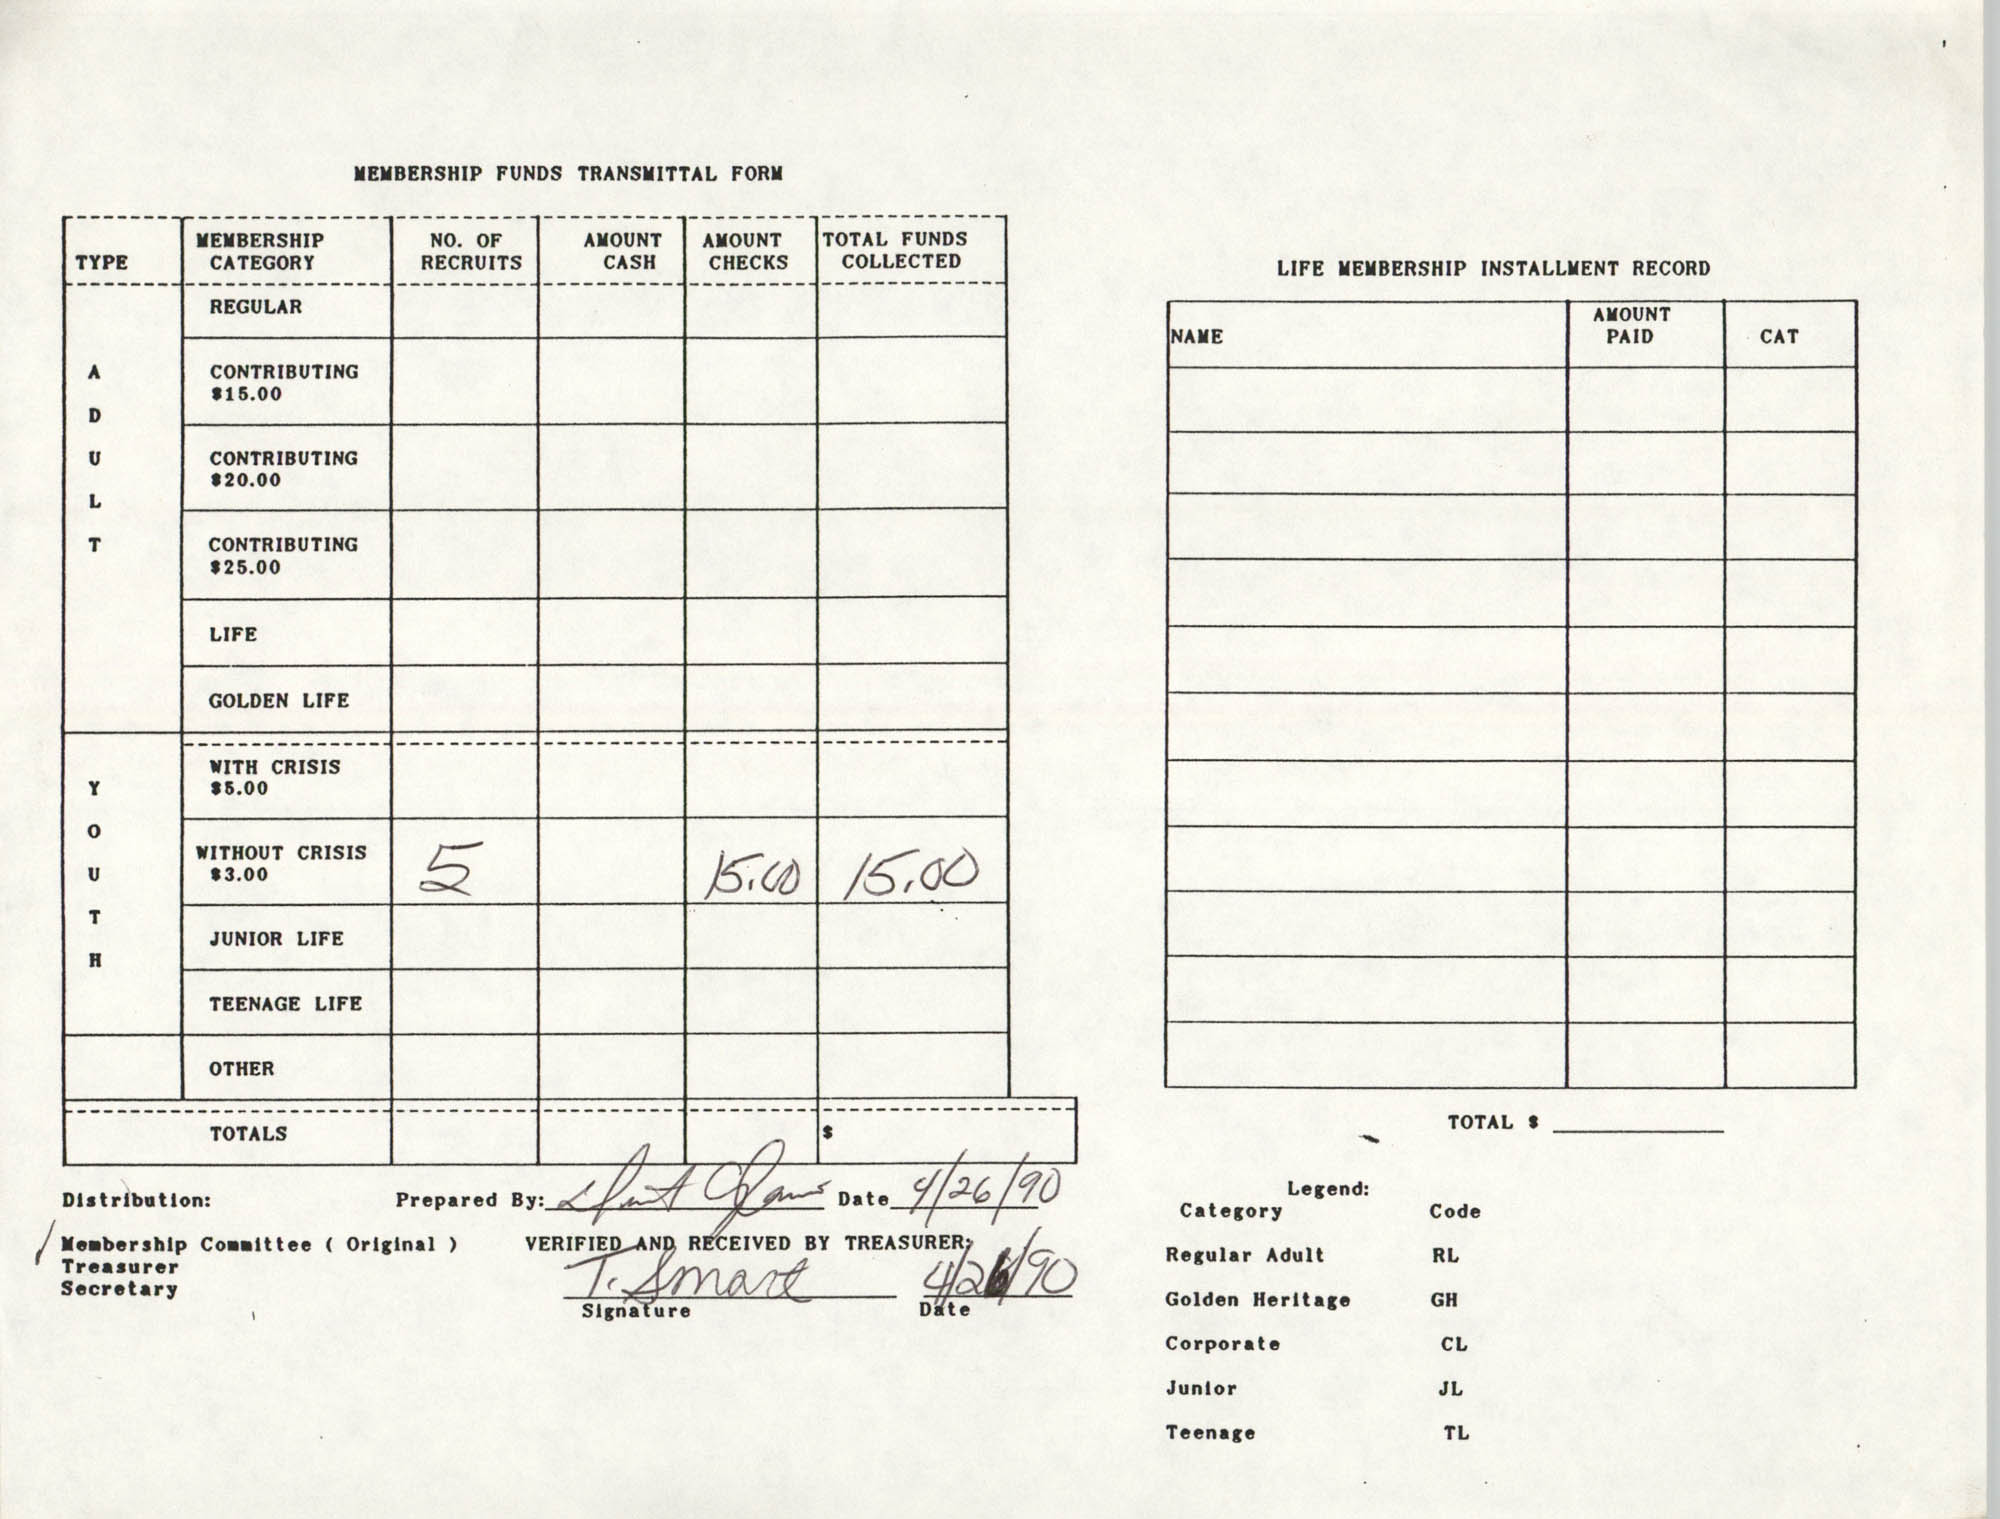 Charleston Branch of the NAACP Funds Transmittal Forms, April 1990, Page 2